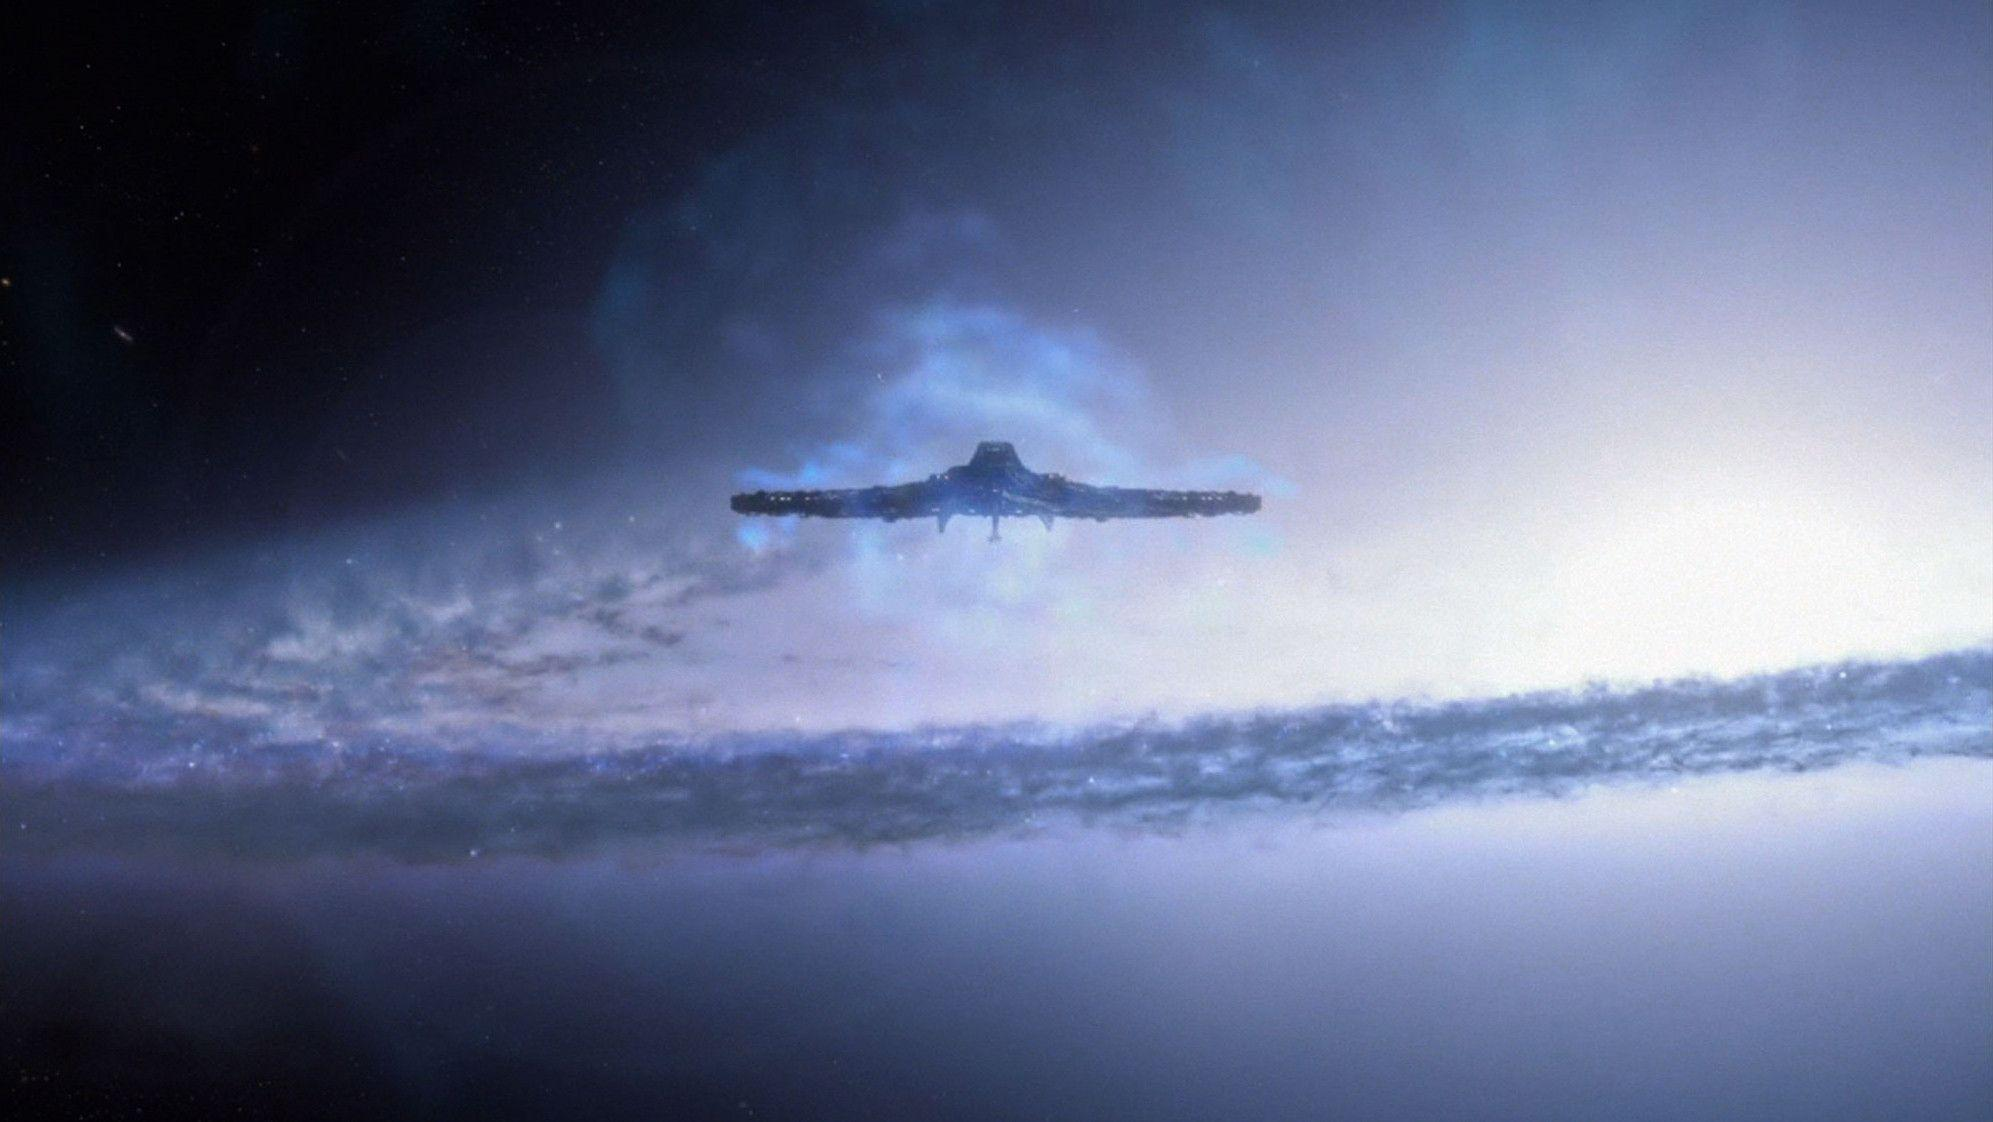 stargate wallpaper universe space - photo #23